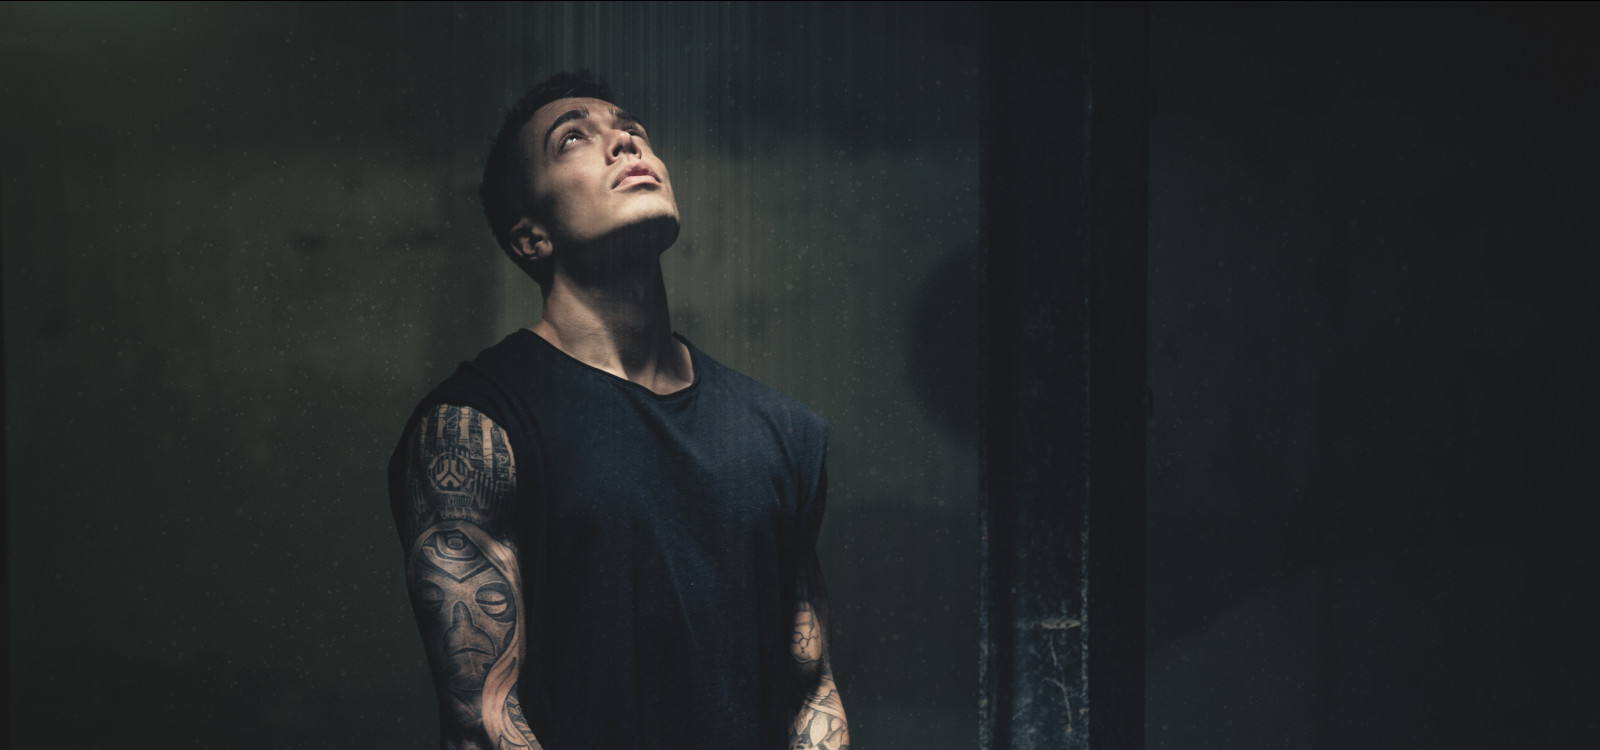 Get ready to go hard with Headhunterz at Zouk Genting